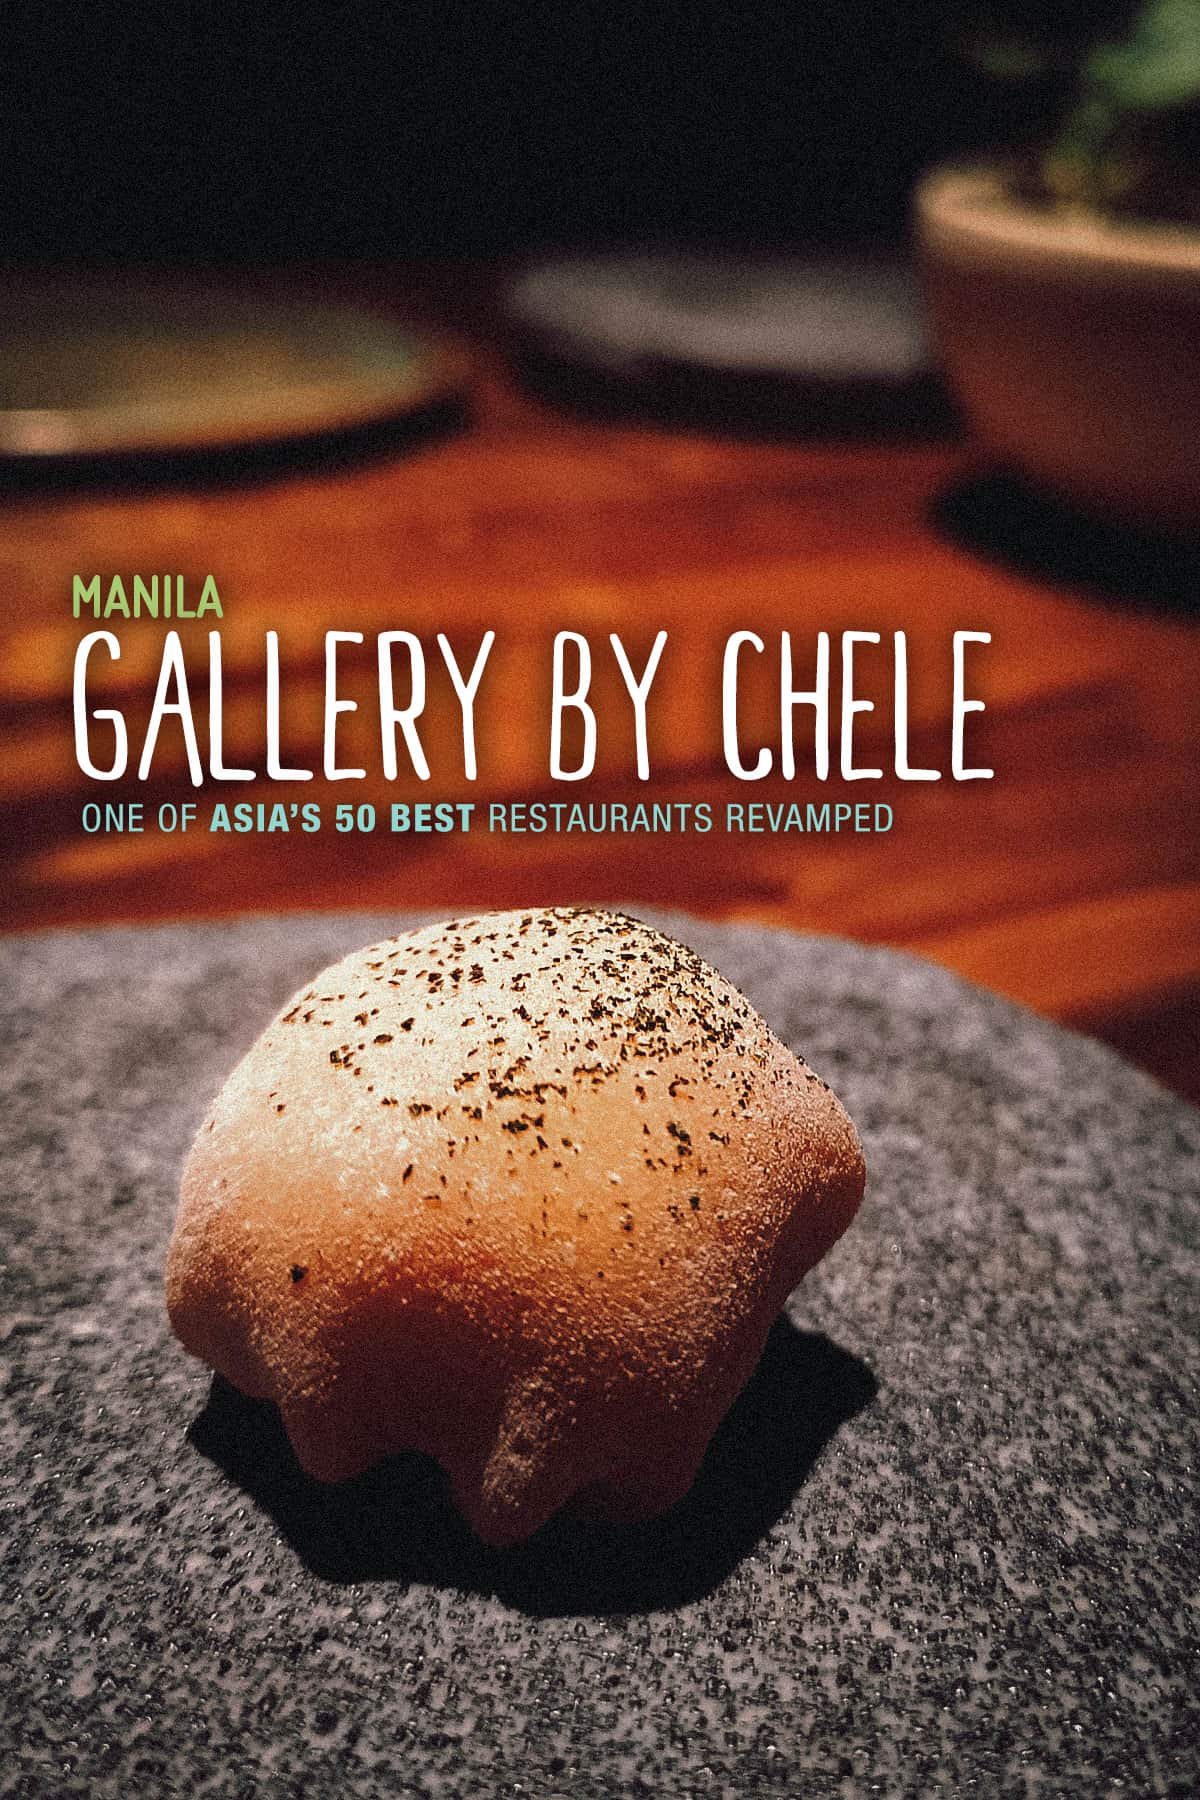 Gallery by Chele, Manila, Philippines